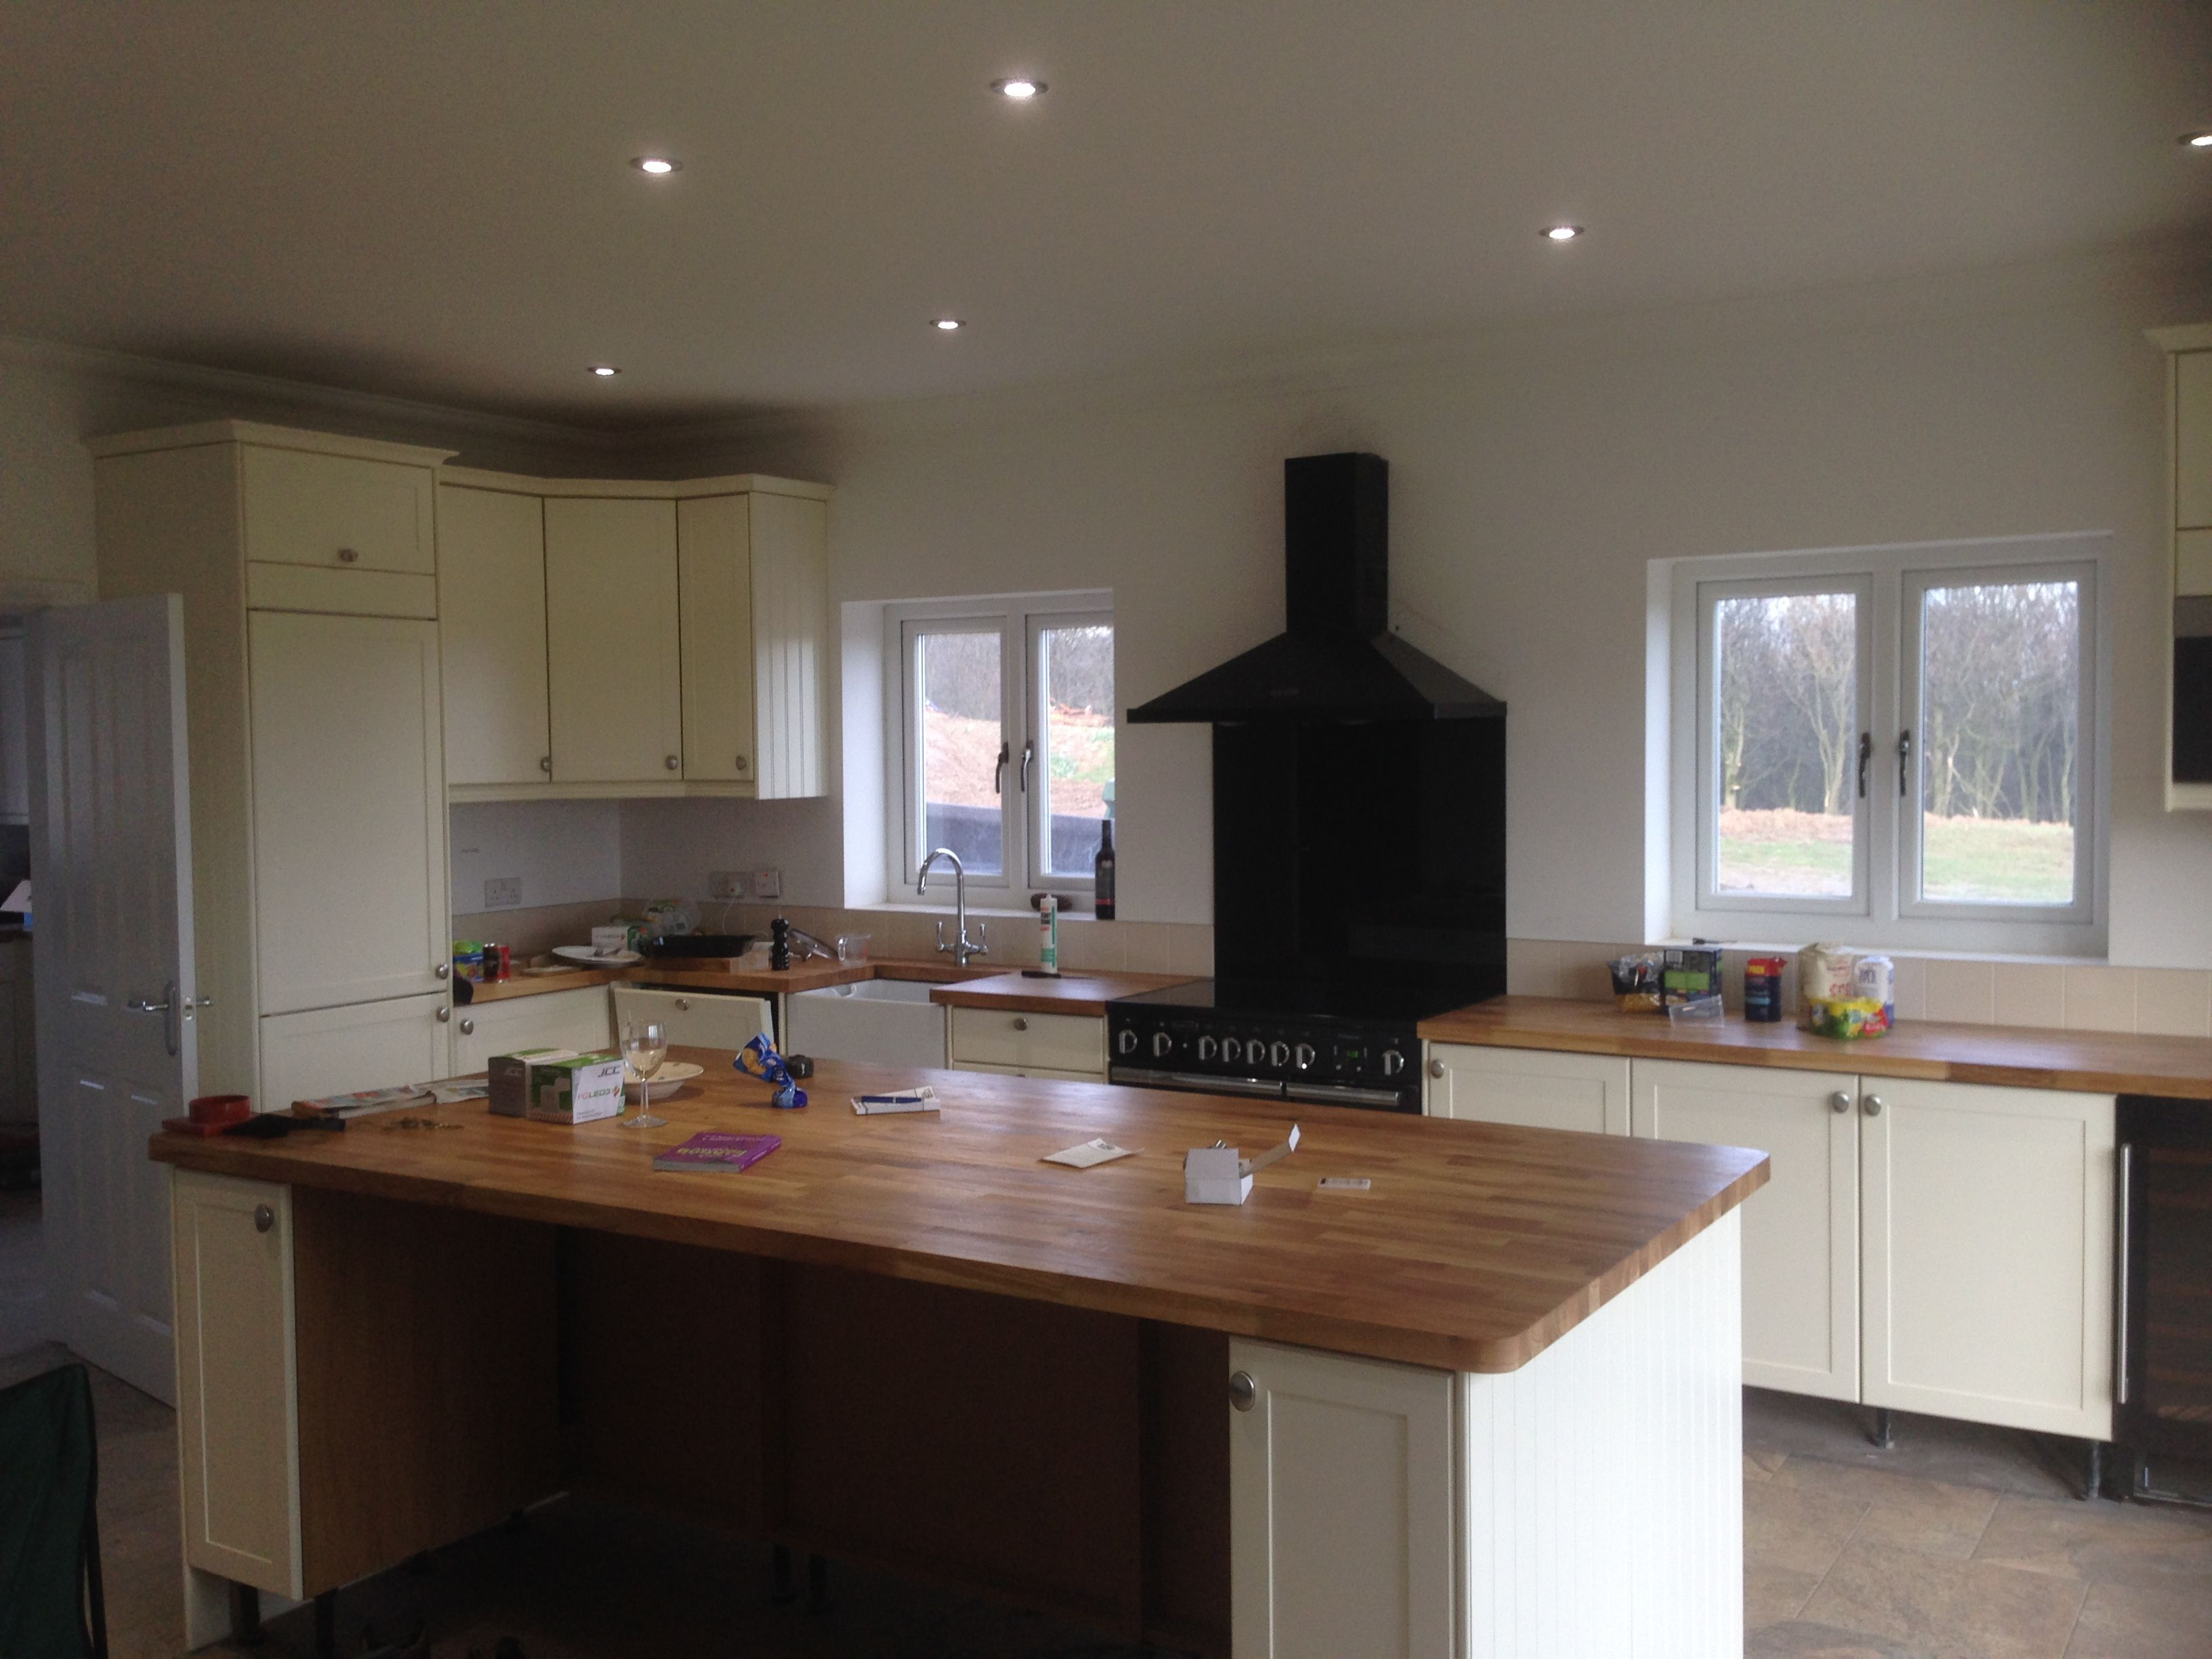 kitchen installation in progress within a brand new build property